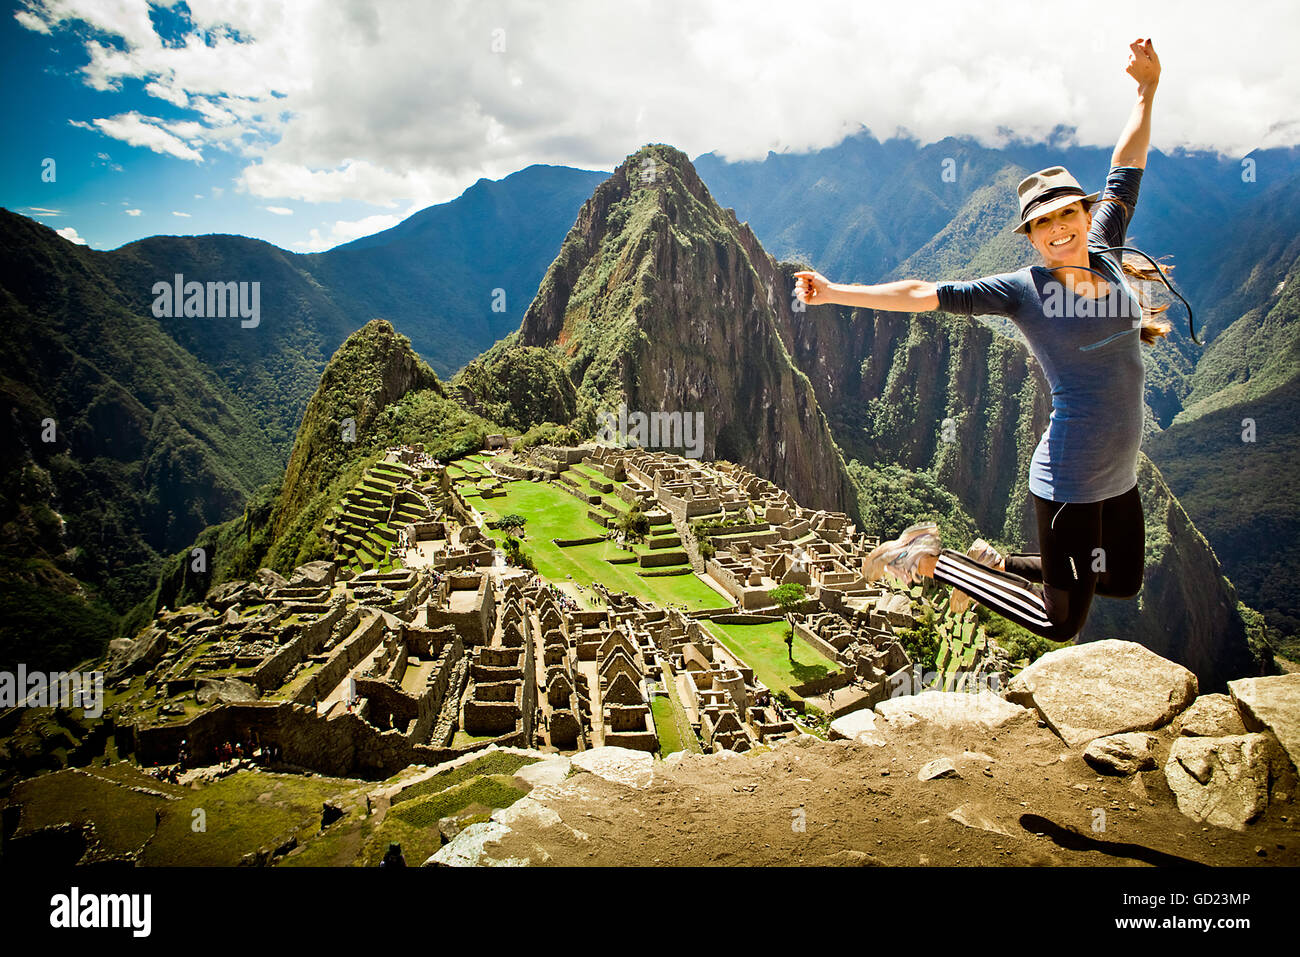 Laura Grier jumping at Machu Picchu ruins, Peru, South America - Stock Image